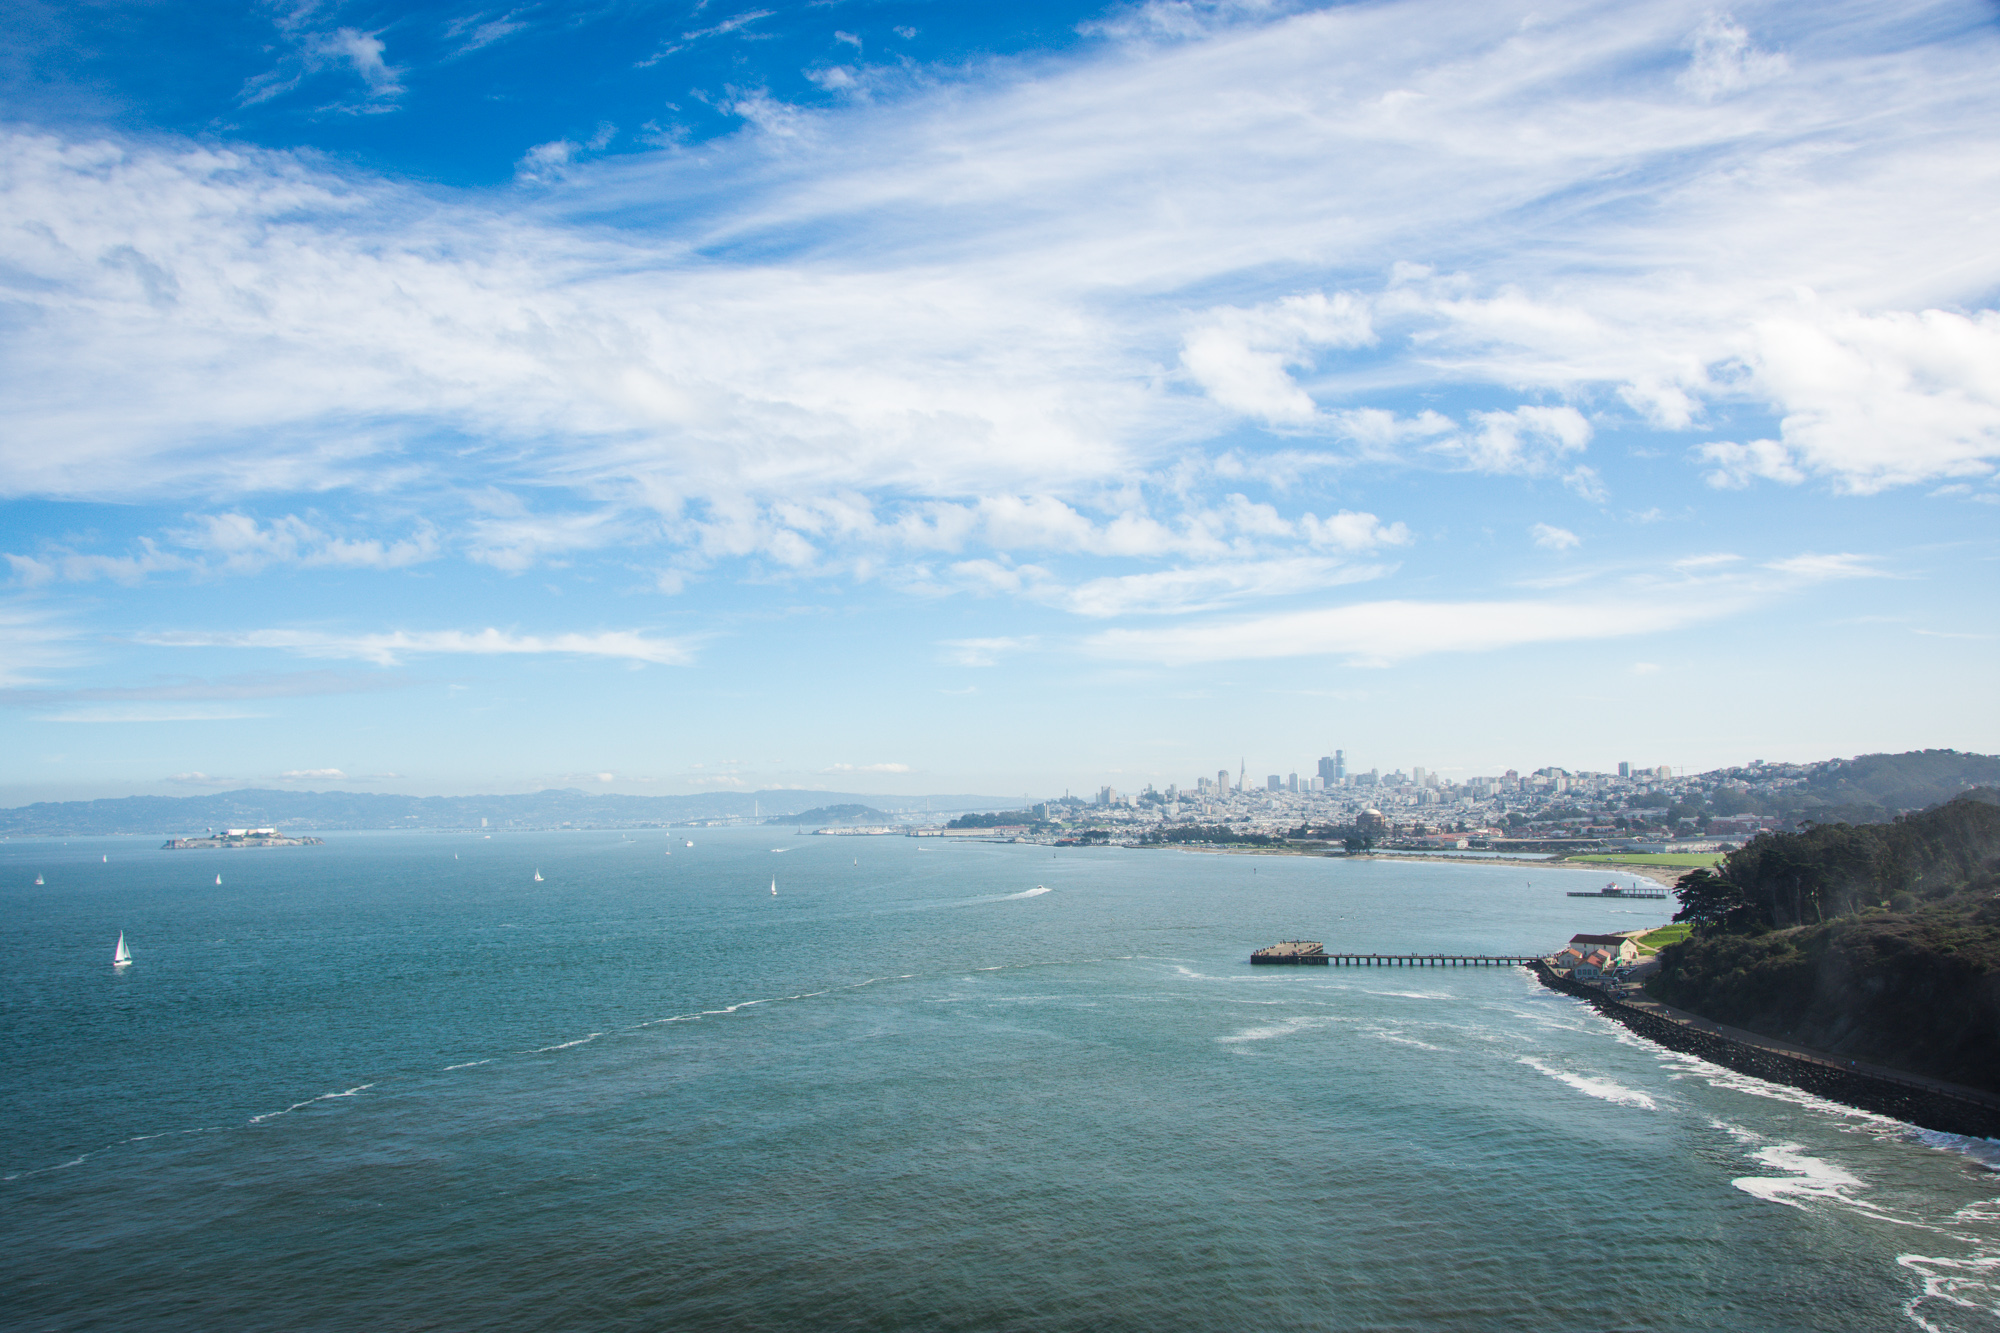 A landscape view from Golden Gate Bridge